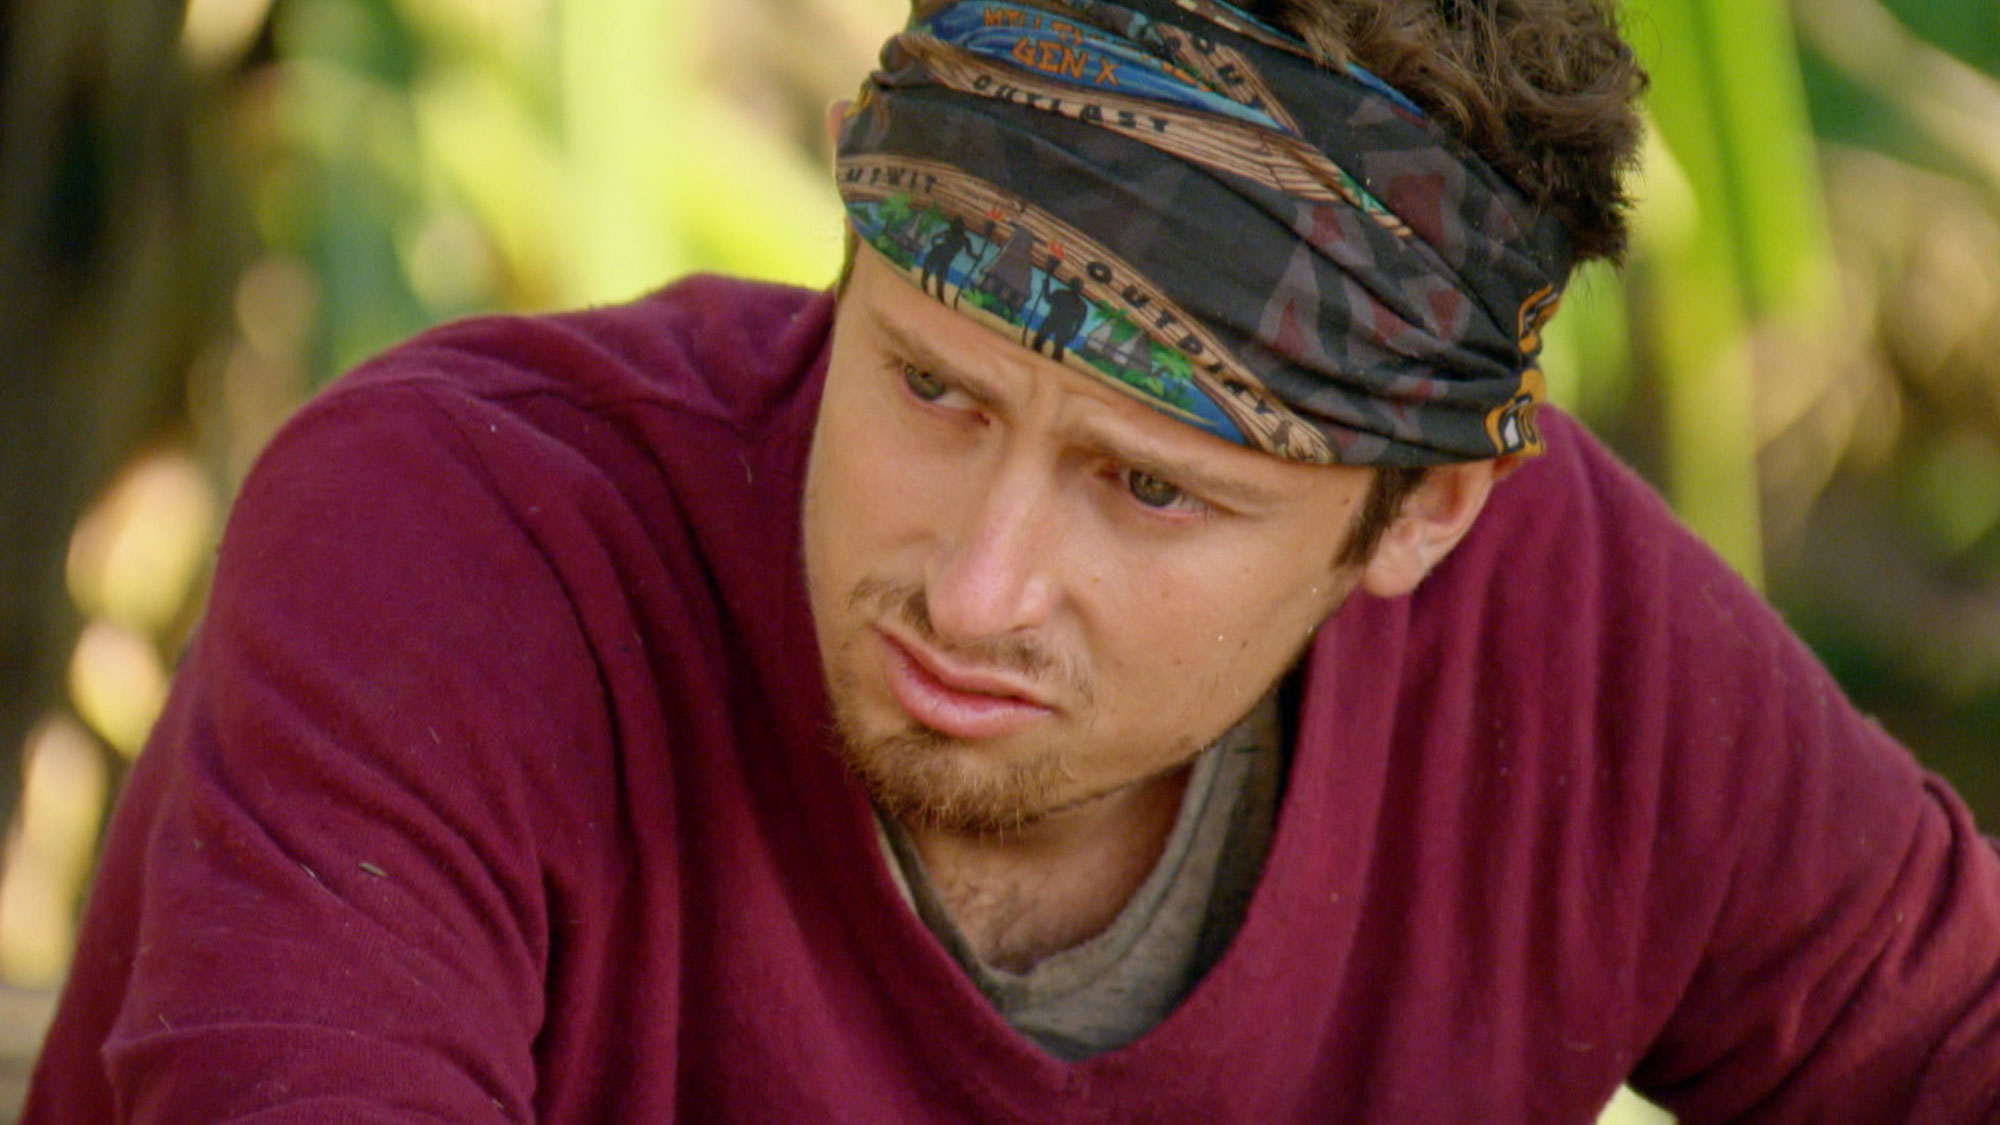 Adam's facial expression shows just how serious Survivor can be.